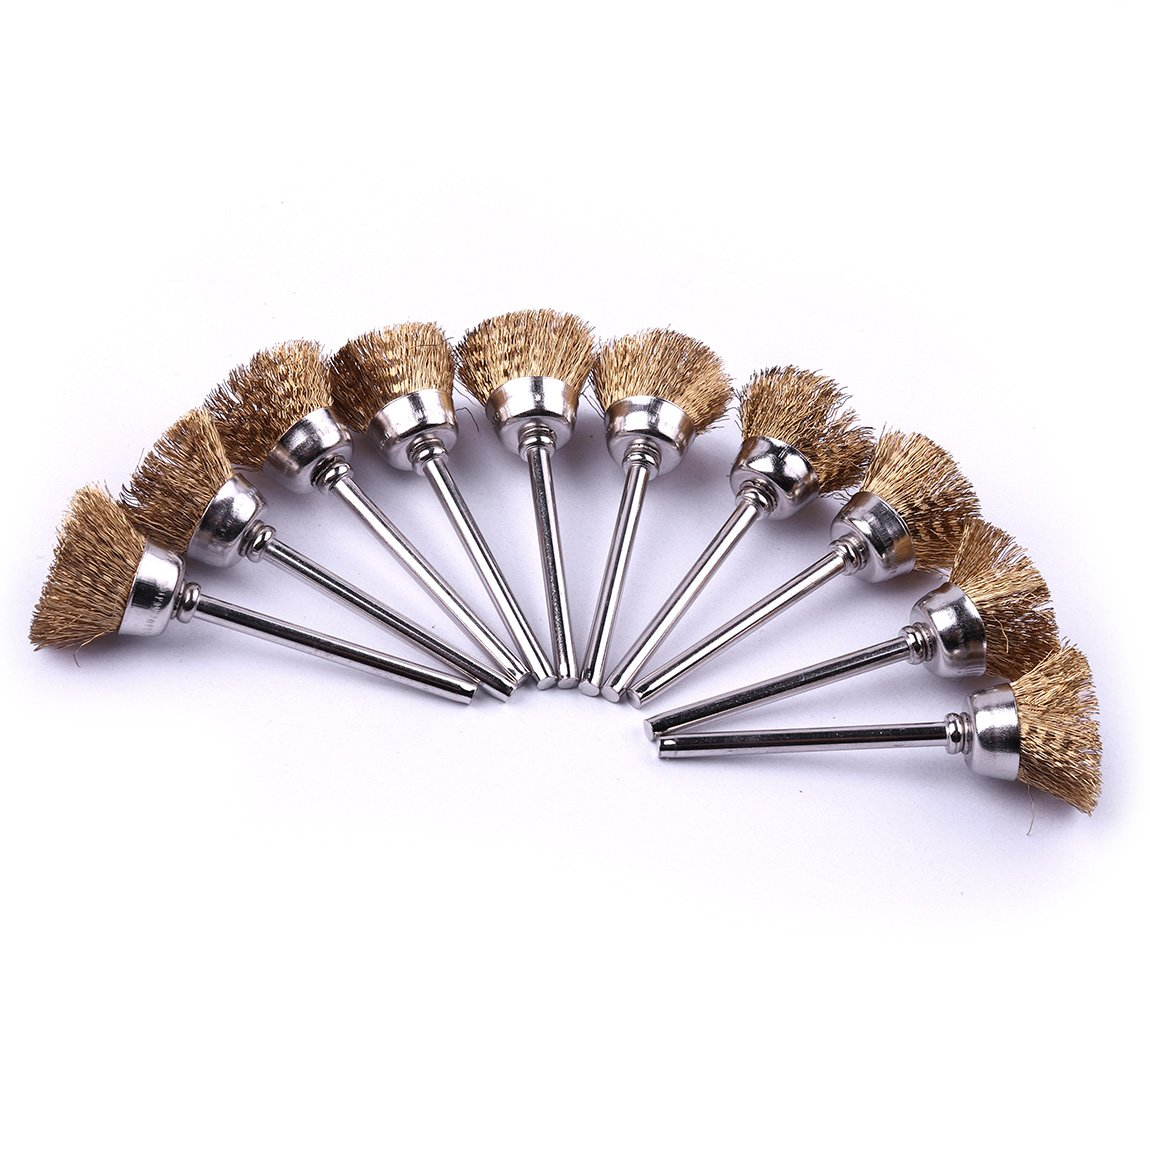 Atoplee 20pcs 1/8 Inch Shank Cup Shape 16mm Brass Wire Brushes Wheel for Die Grinder Rotary Tools